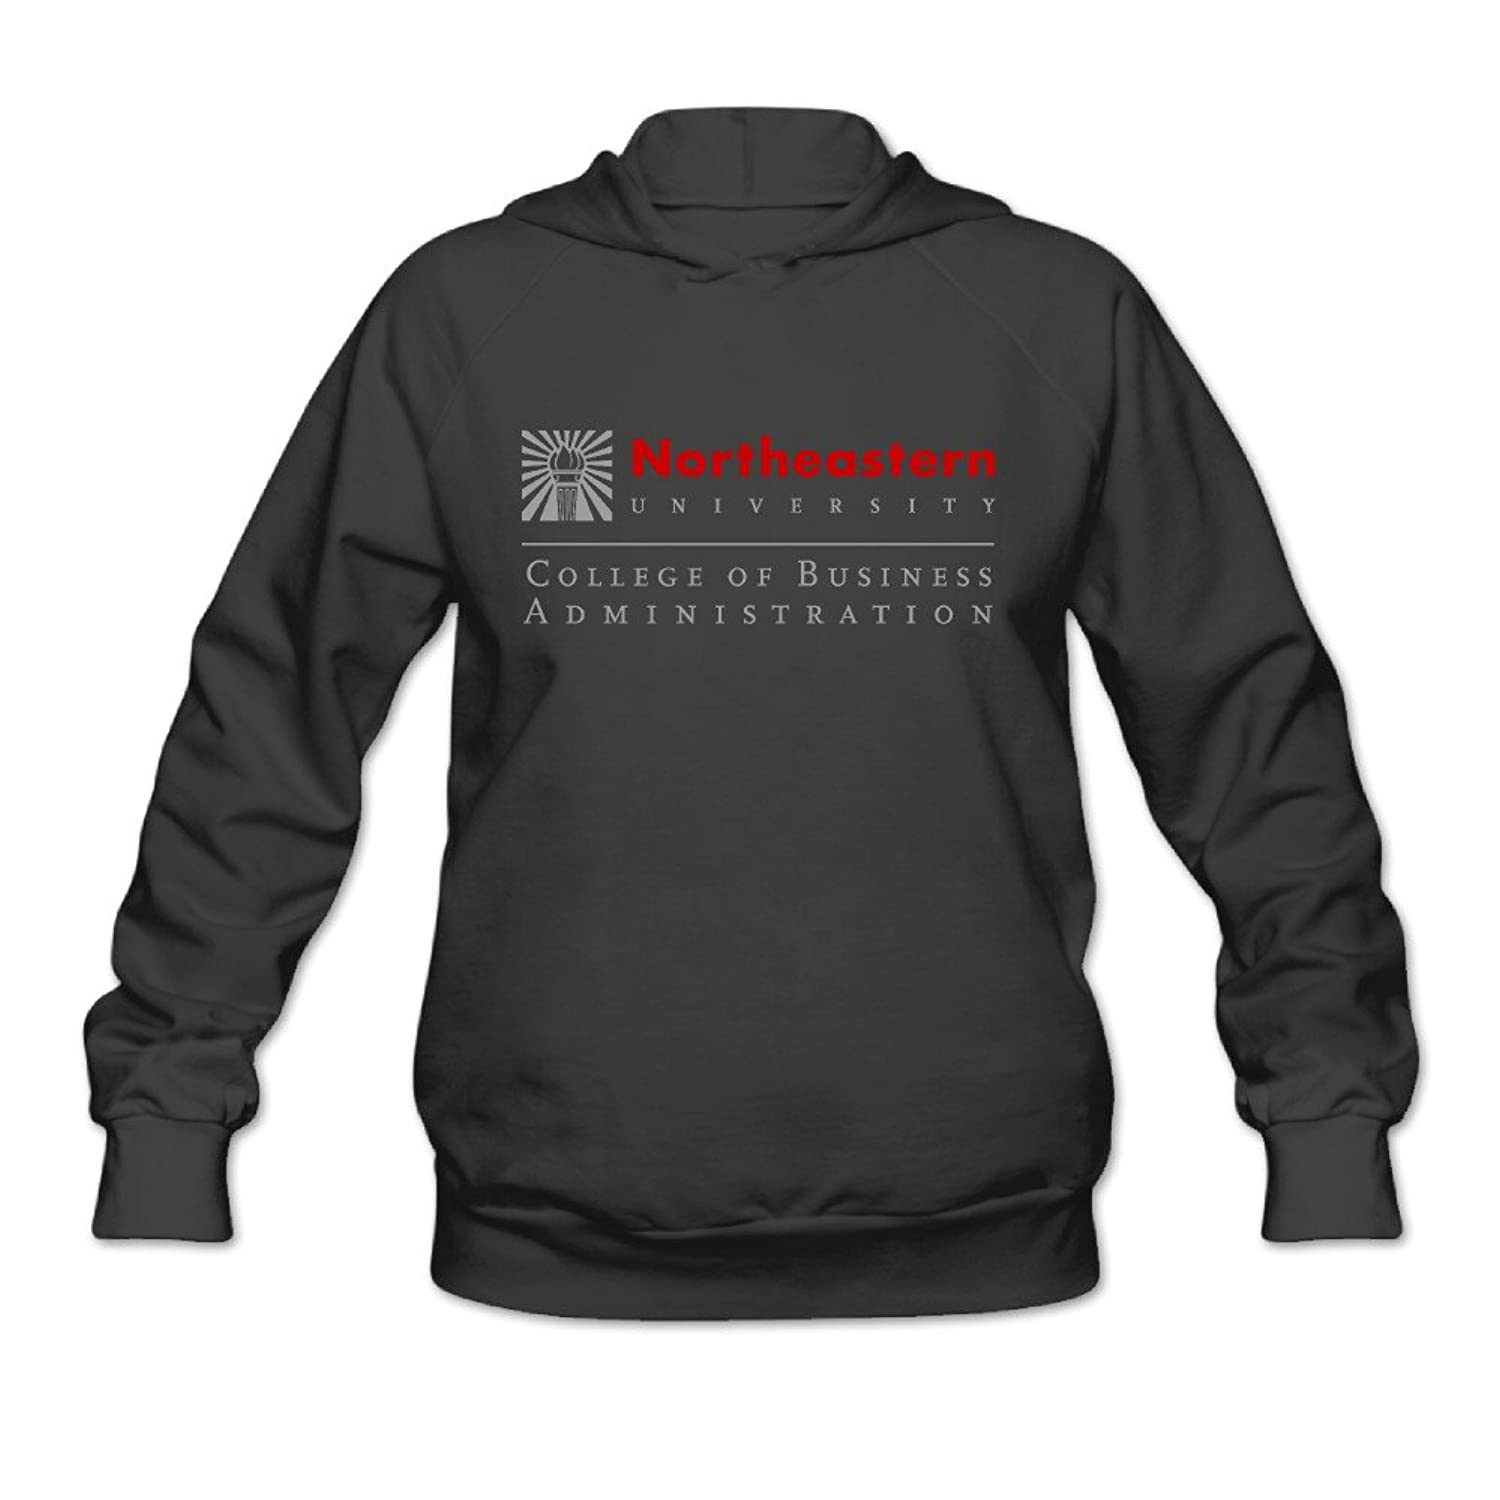 Liusan27 Northeastern University Womens Sweatshirts Teeshirt Soft